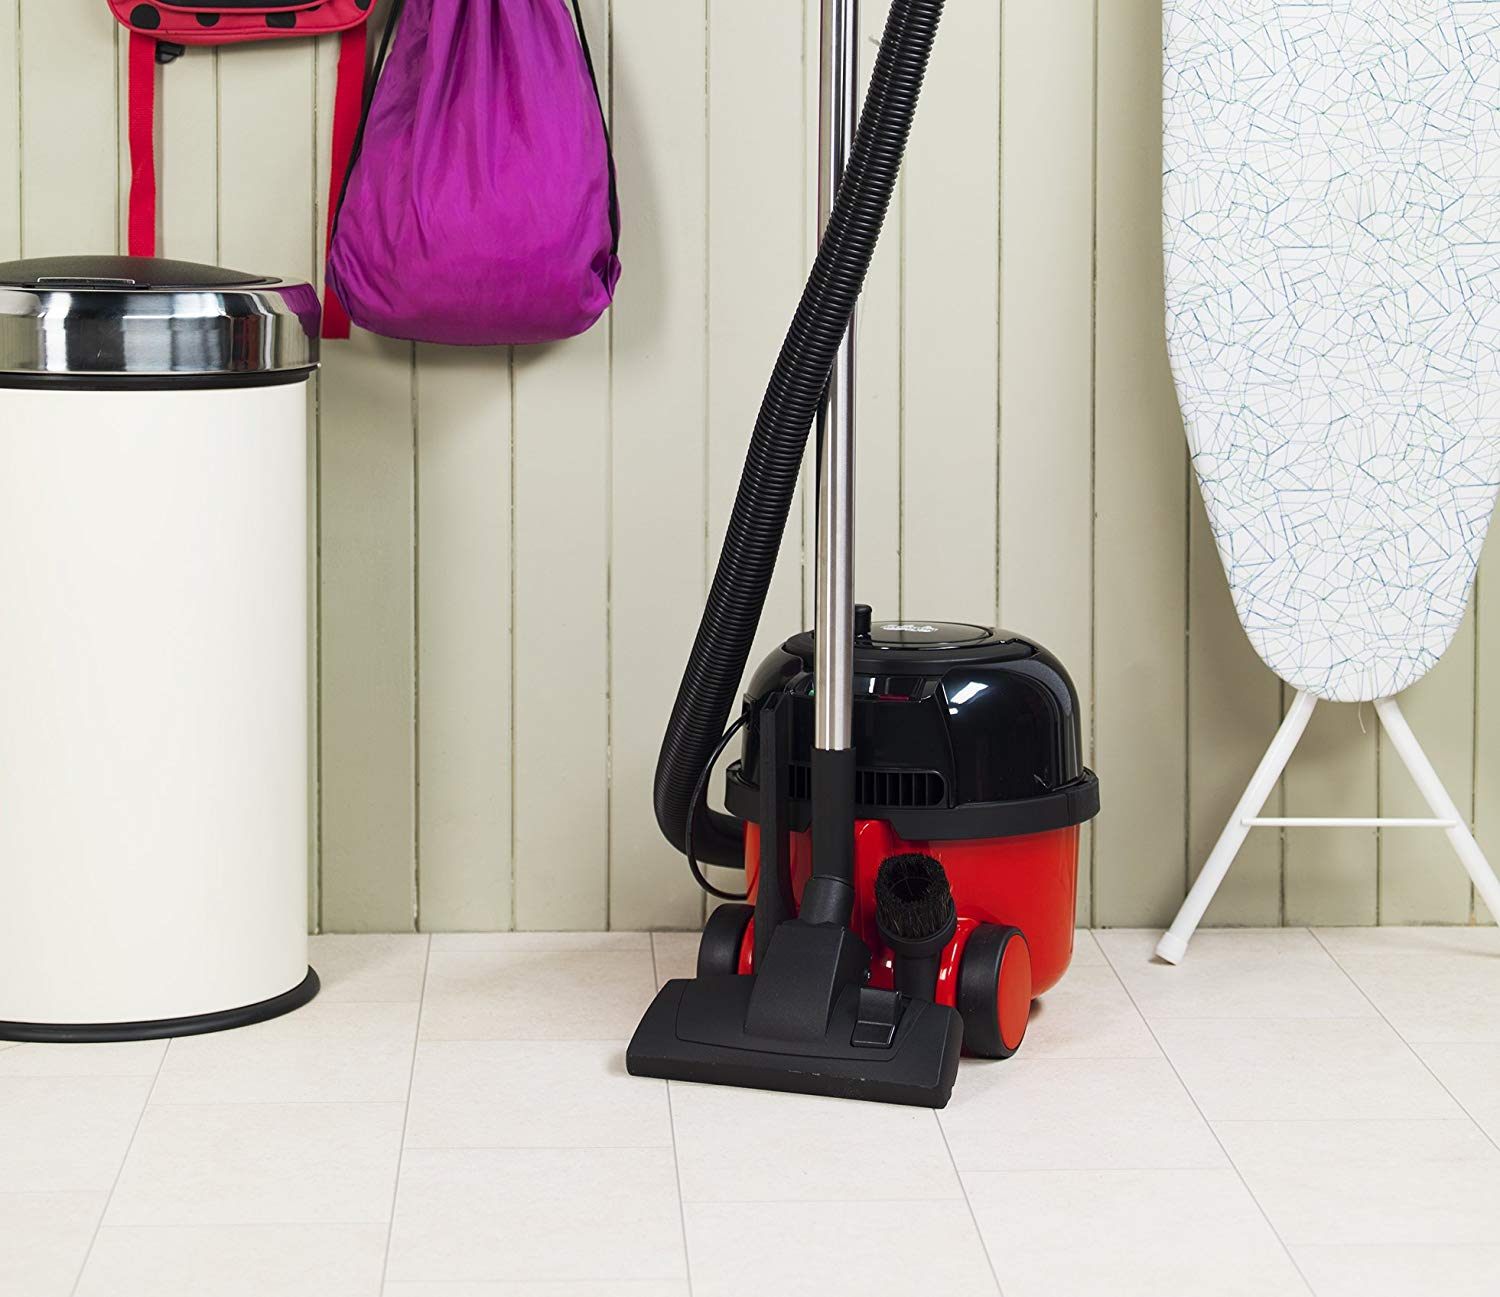 Henry Numatic Compact Vacuum Cleaner Hoover 620W 6 Litre HVR160-11 4 Colours UK